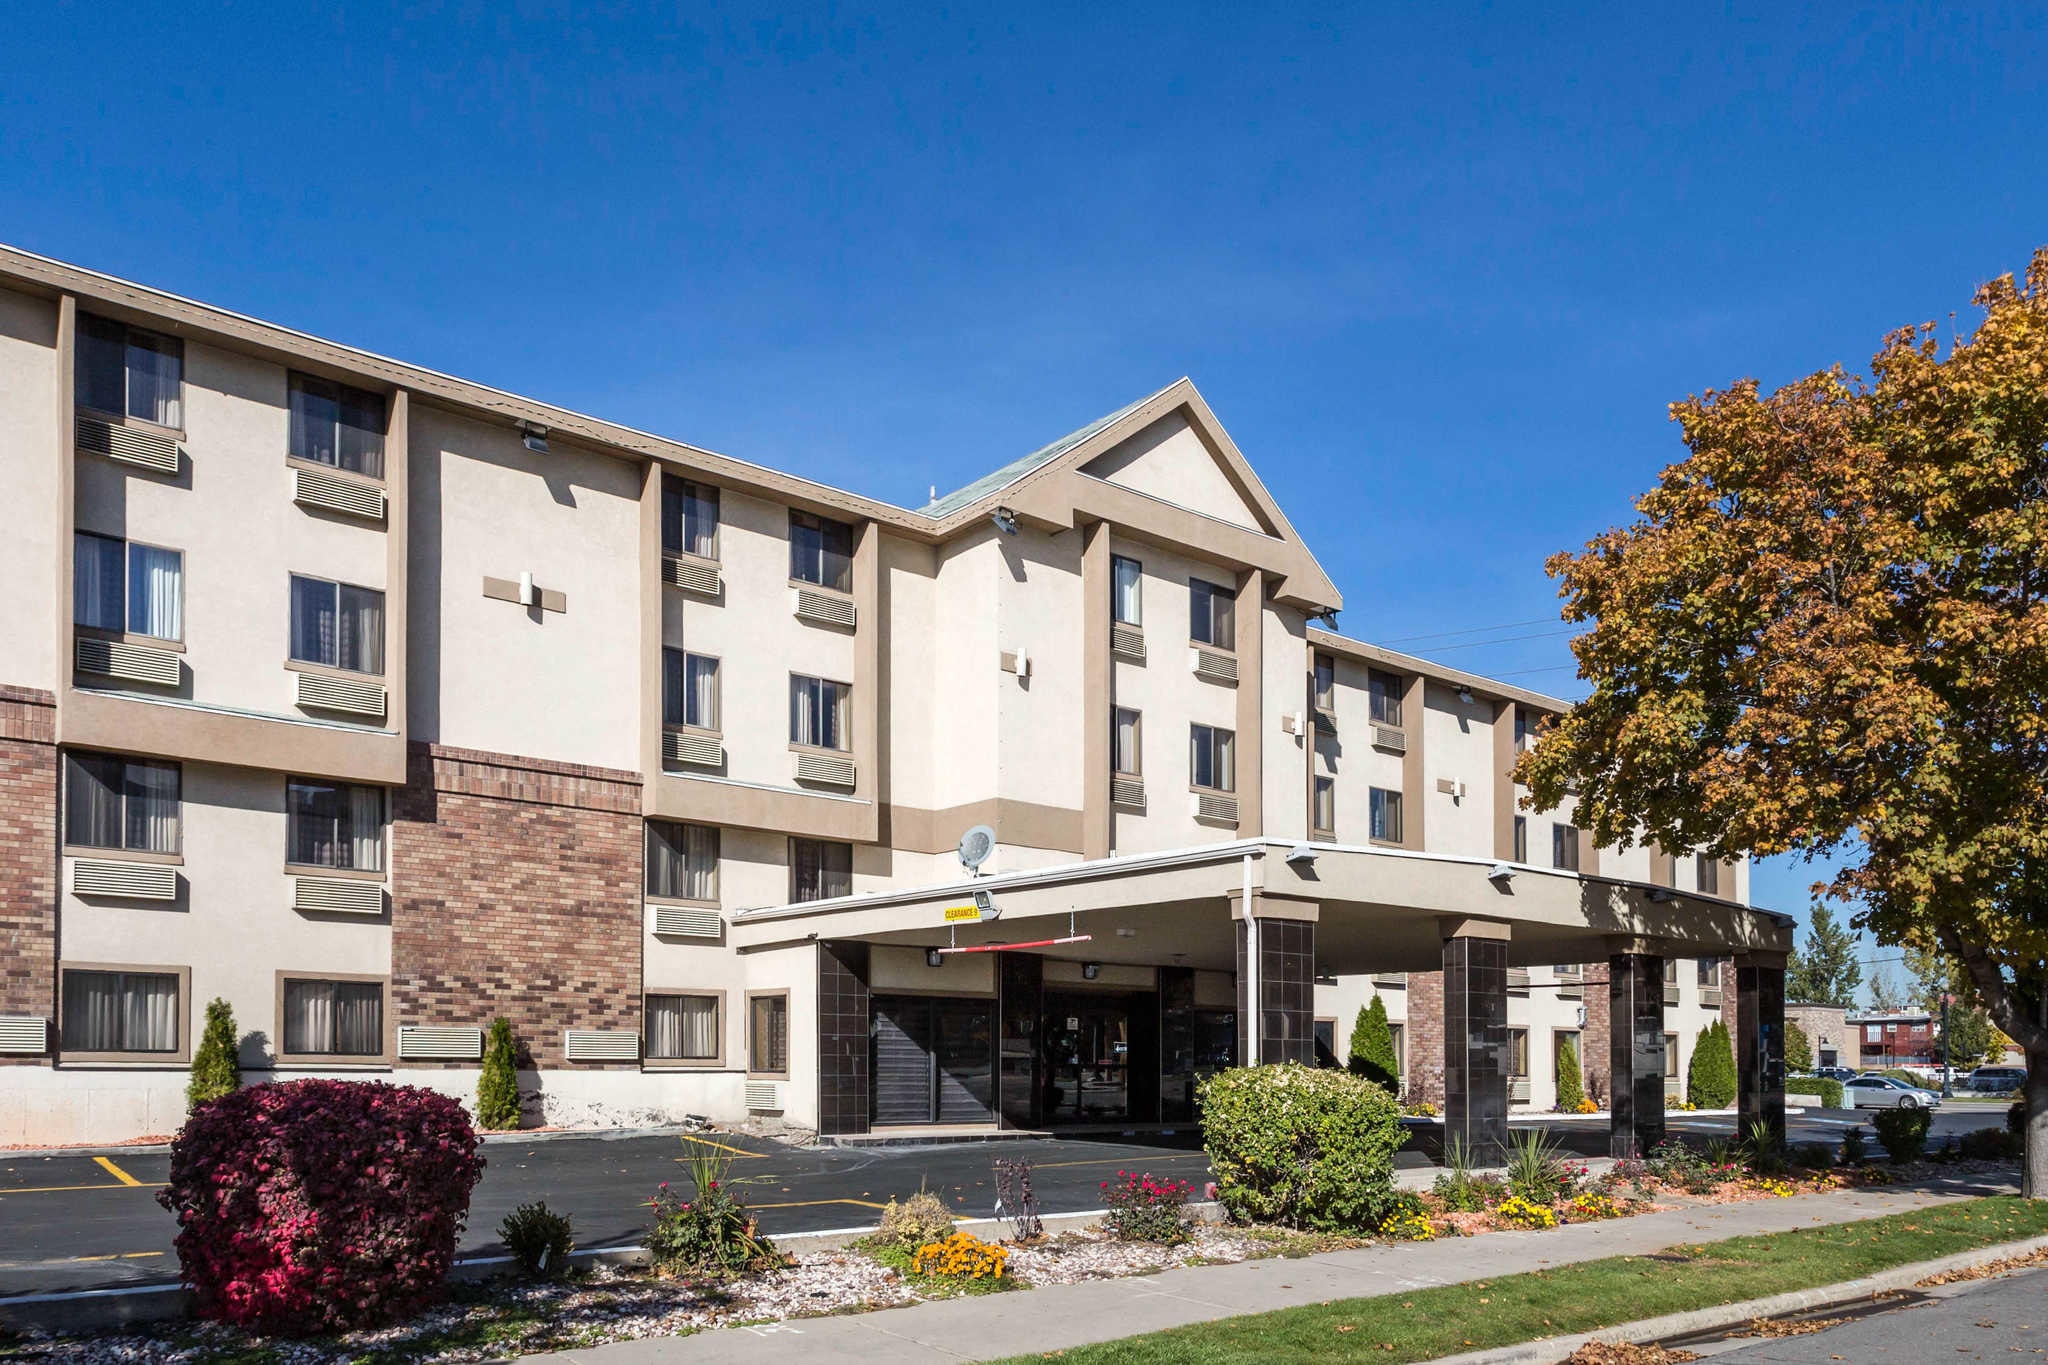 Quality Inn Downtown At 616 S 200 West Salt Lake City Ut On Fave